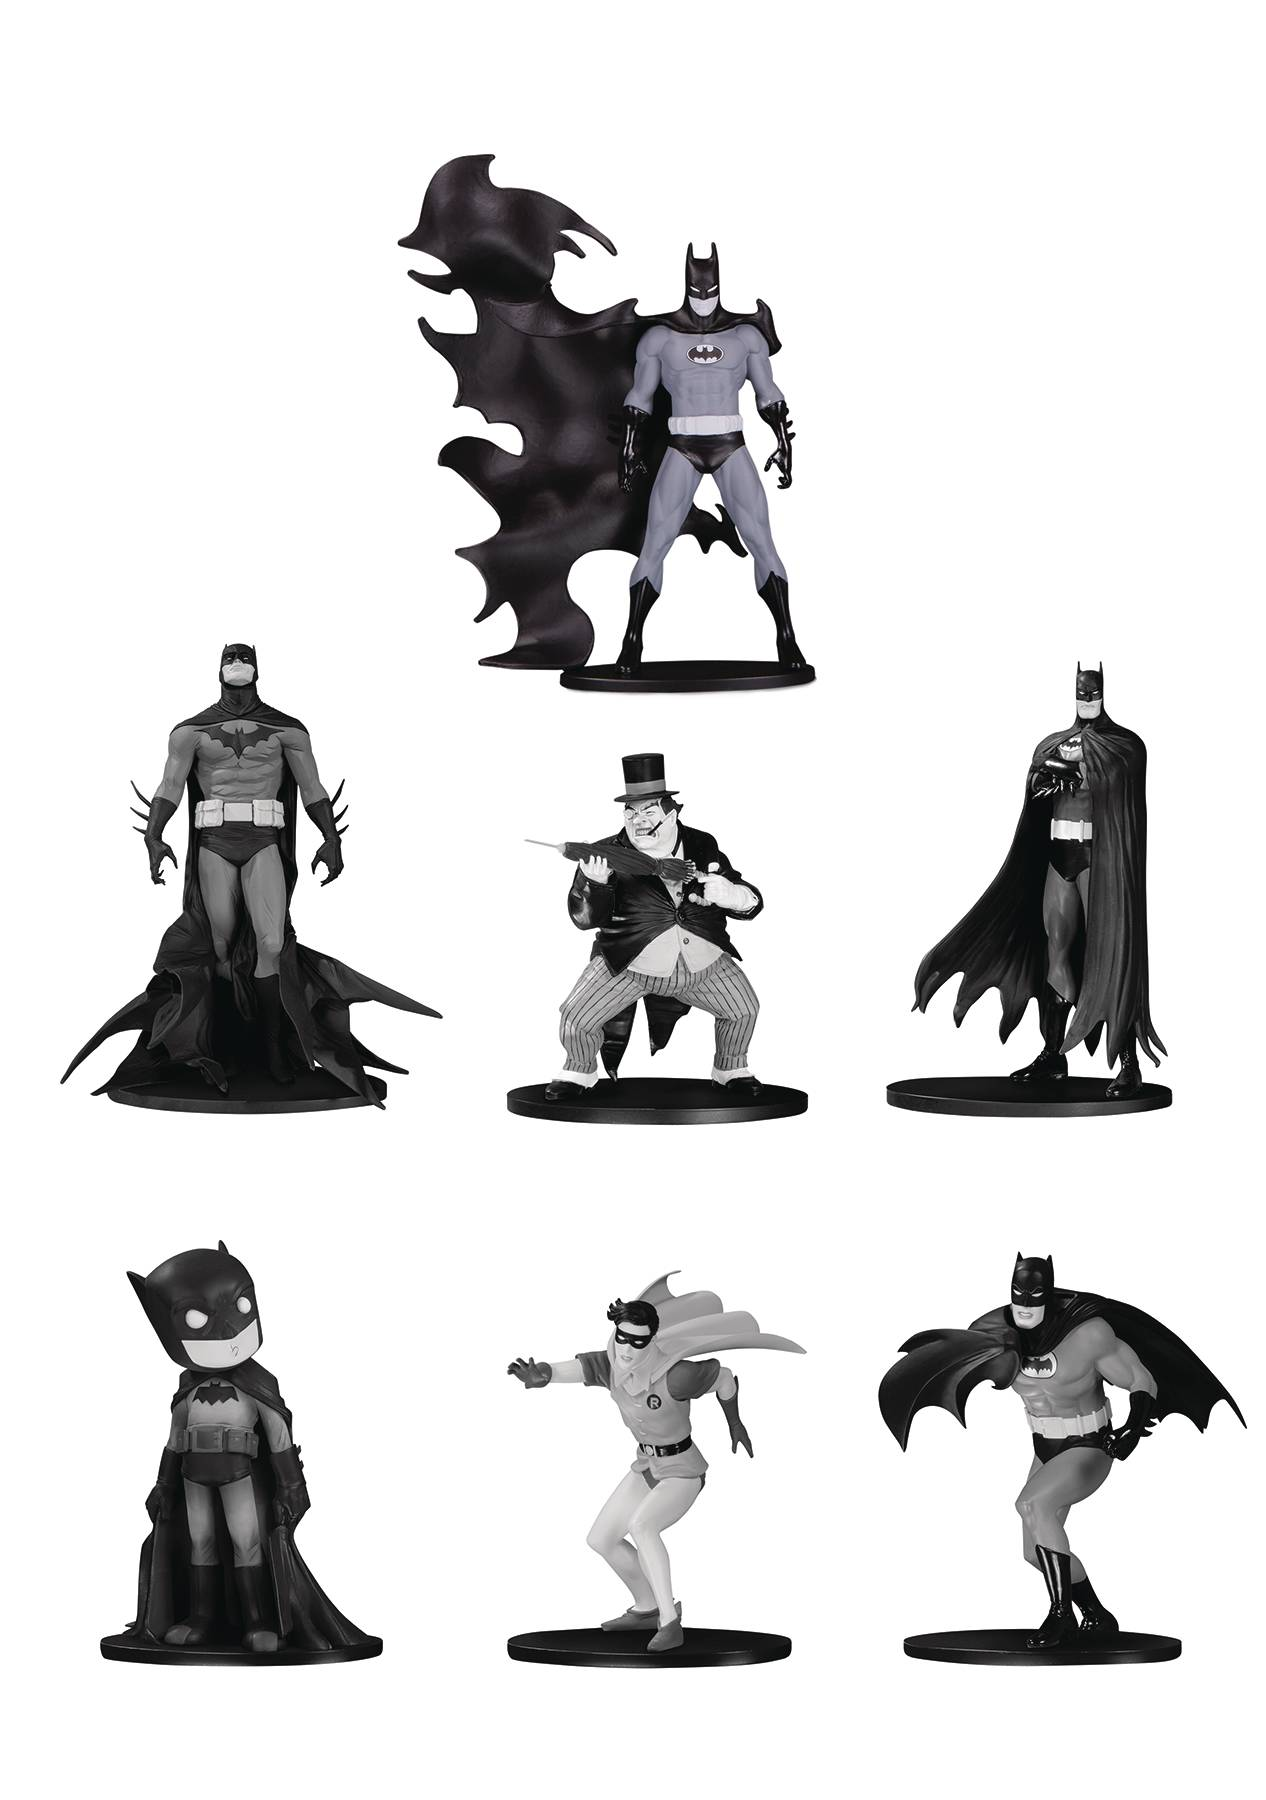 BATMAN BLACK & WHITE MINI PVC FIGURE 7 PACK SET 4.jpg